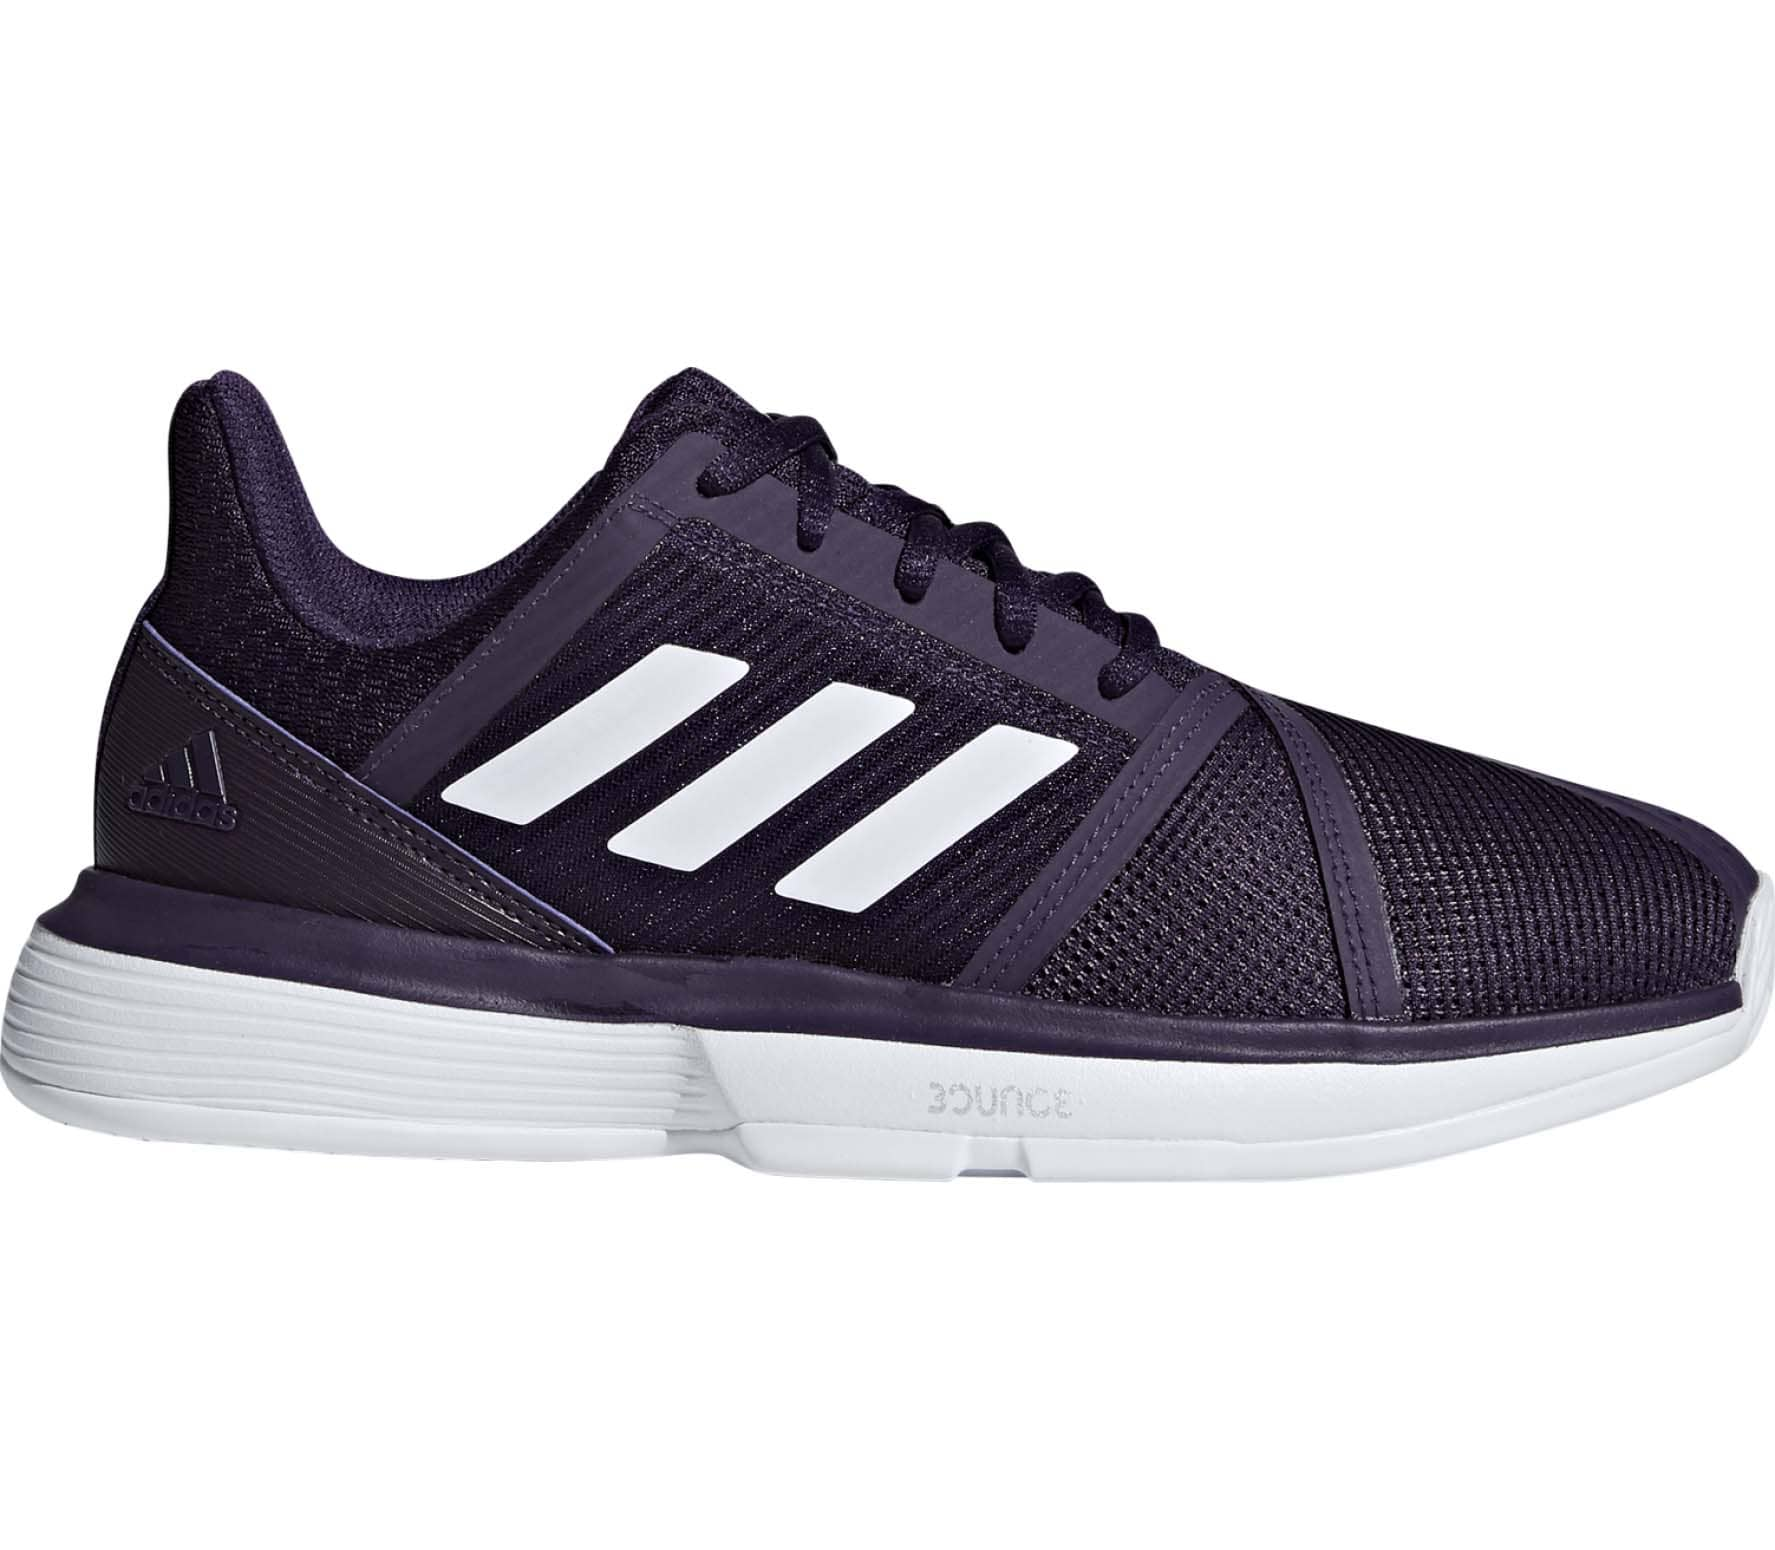 hot sale online 4a0fa 71ea7 adidas Performance - Court Jam Bounce Femmes Chaussure de tennis  (noir blanc)